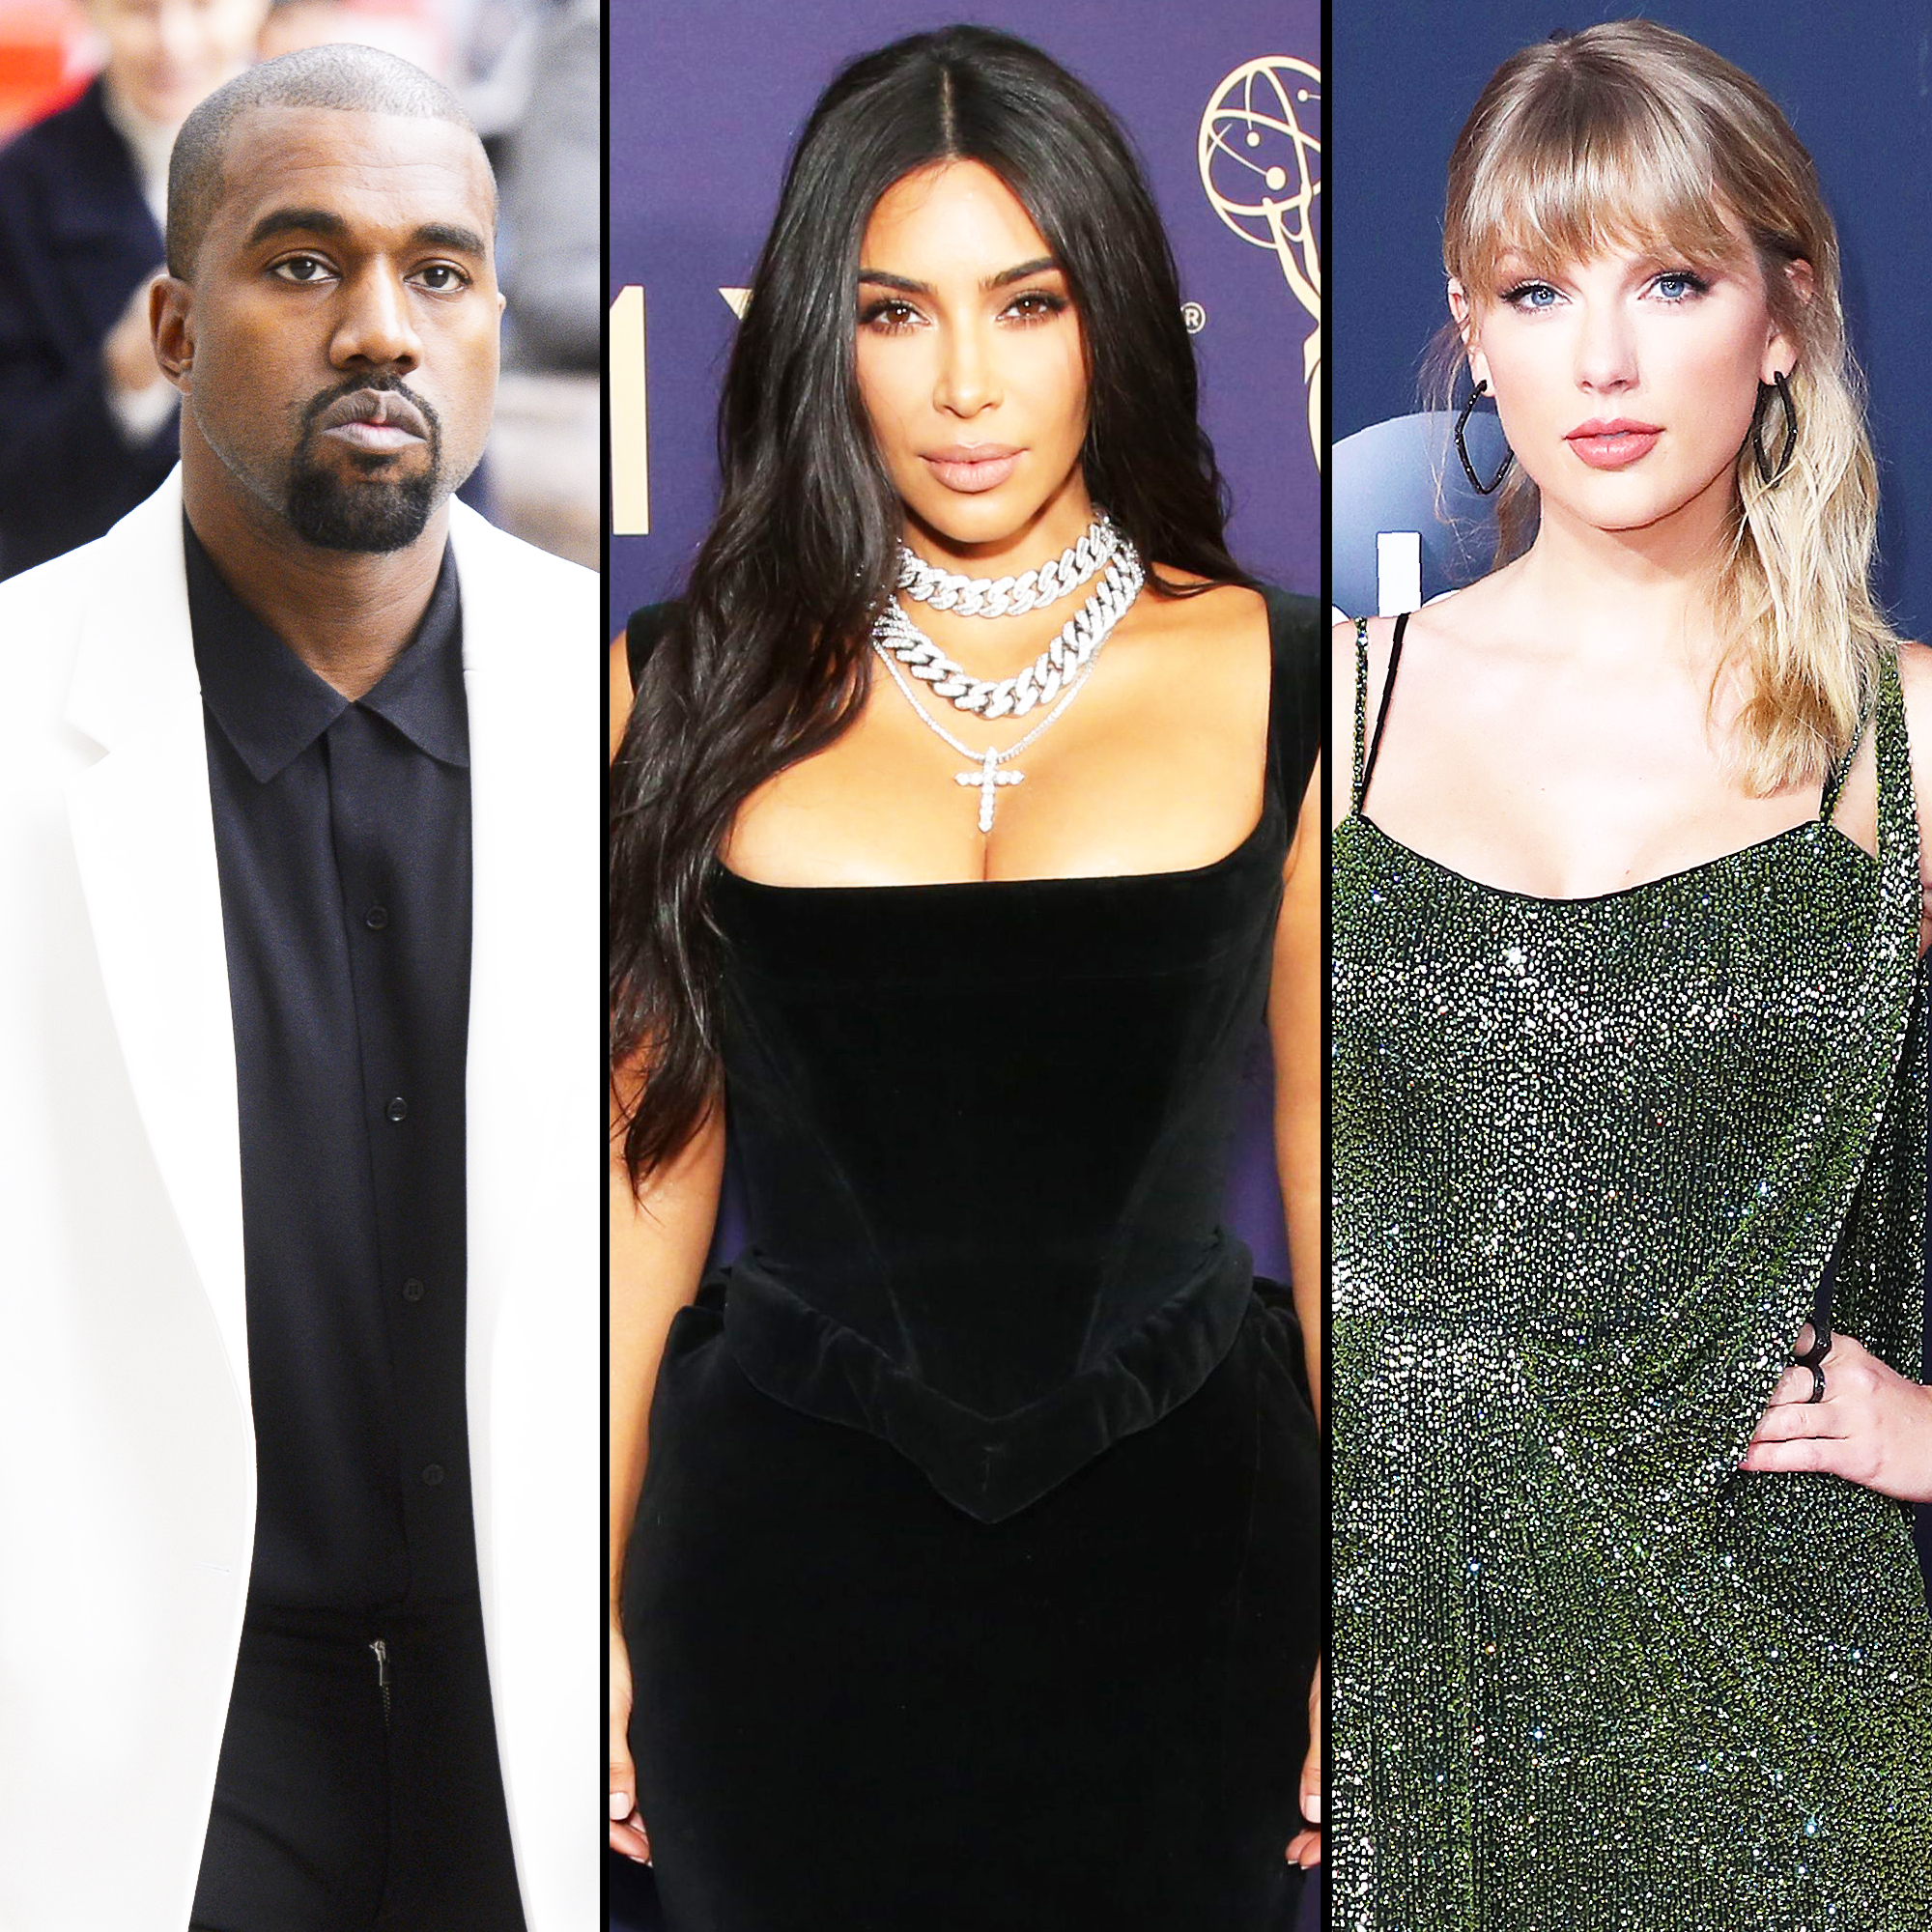 Kanye West Appears To Reference Kim Kardashian Taylor Swift Drama